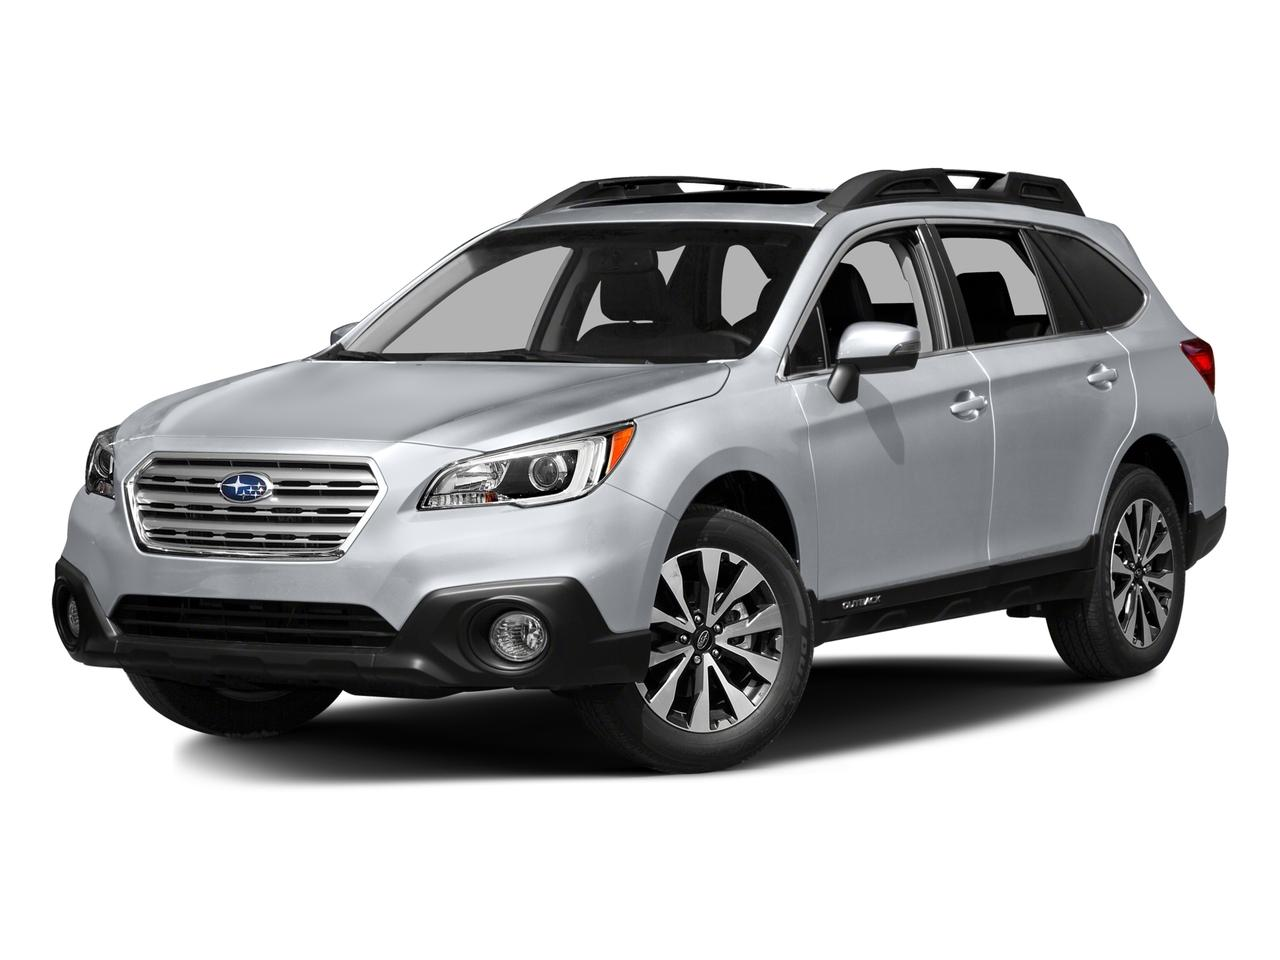 2016 Subaru Outback Vehicle Photo in Joliet, IL 60435